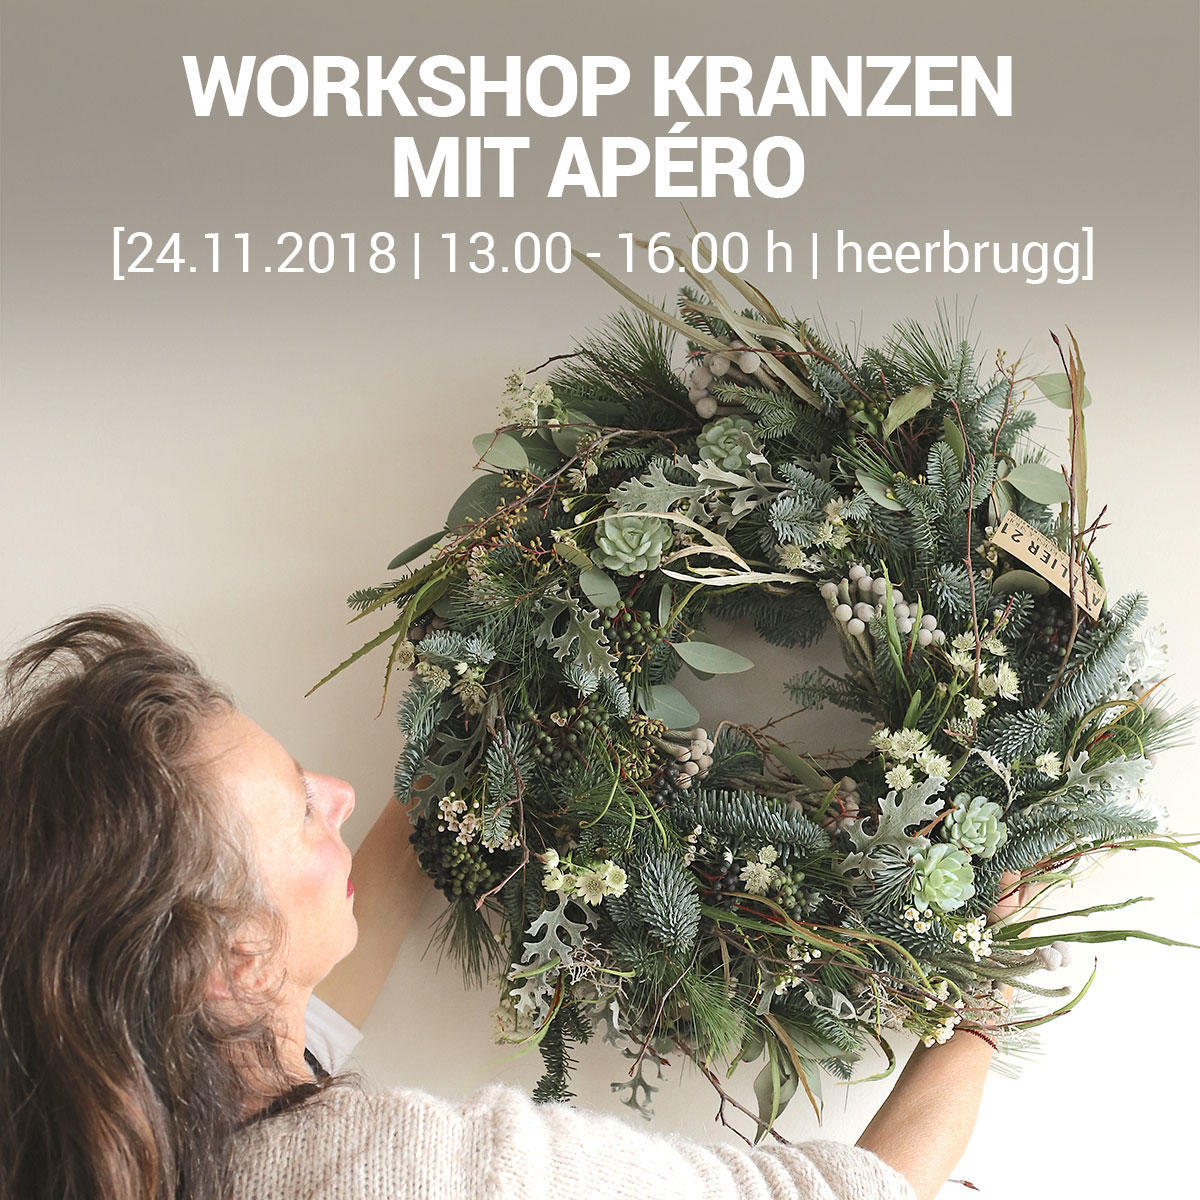 rhyCHI | Workshop Kranzen mit Apéro